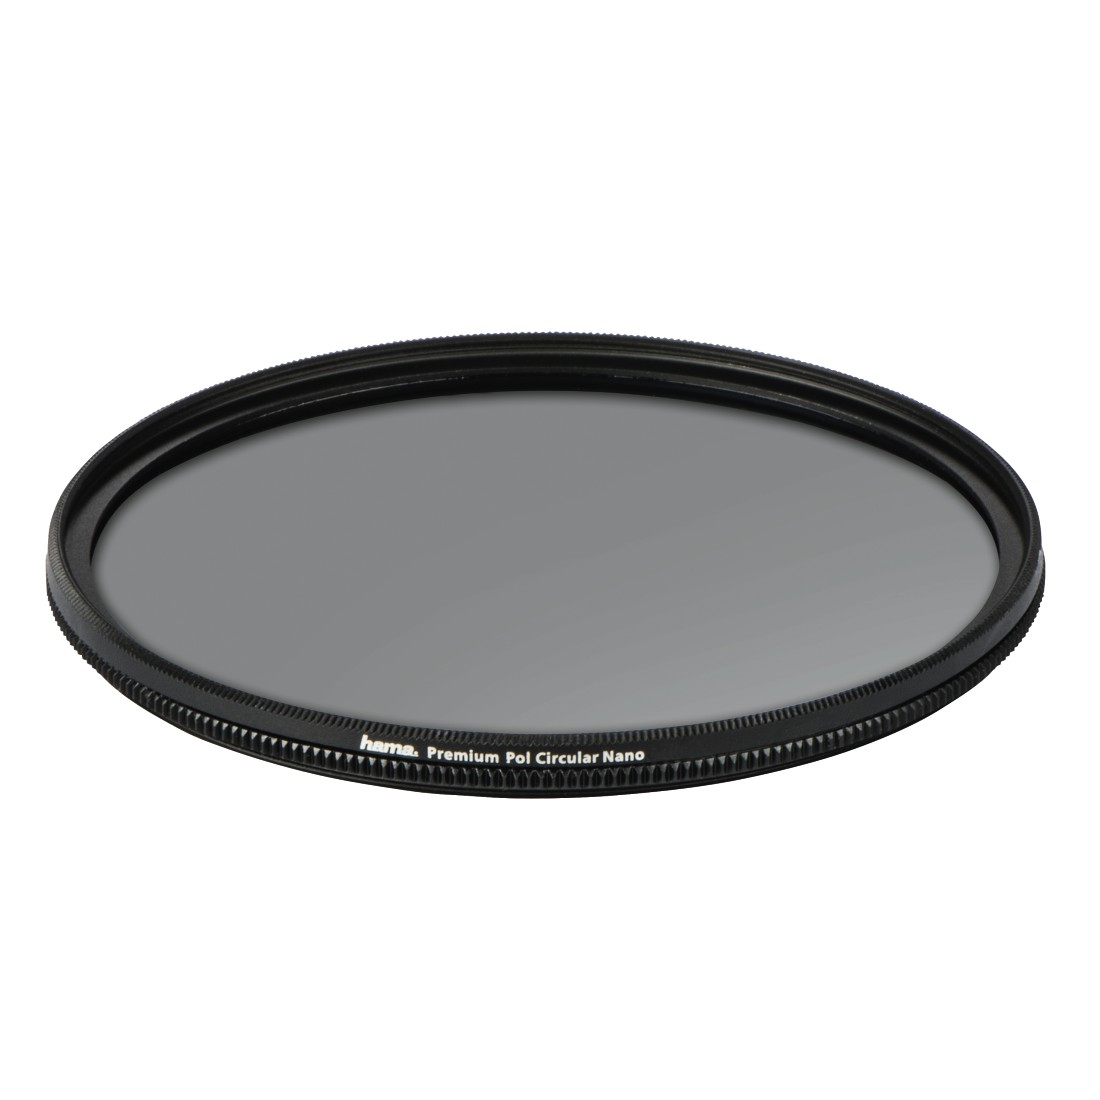 "abx High-Res Image - Hama, ""Premium"" Polar Filter, Cir., 37 mm width, Nano, Super-coated: 18 layers"